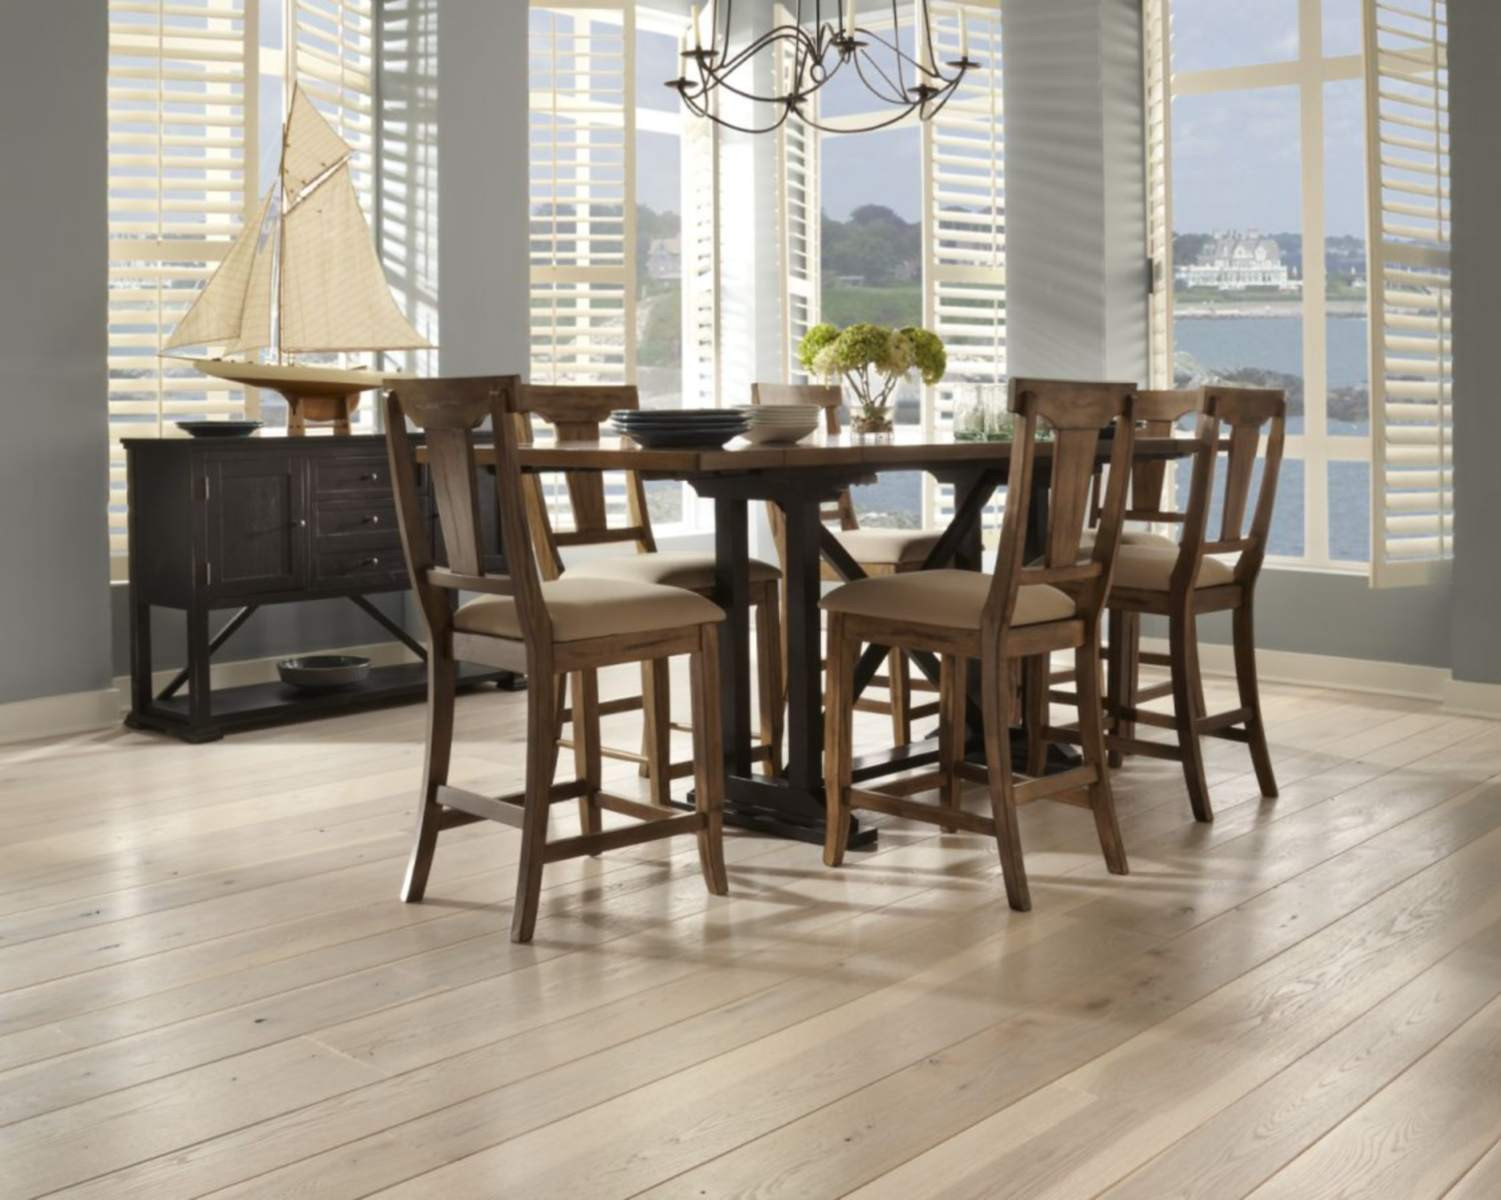 bellawood hardwood flooring prices of top 5 brands for solid hardwood flooring throughout a dining room with carlisle hickorys wide plank flooring